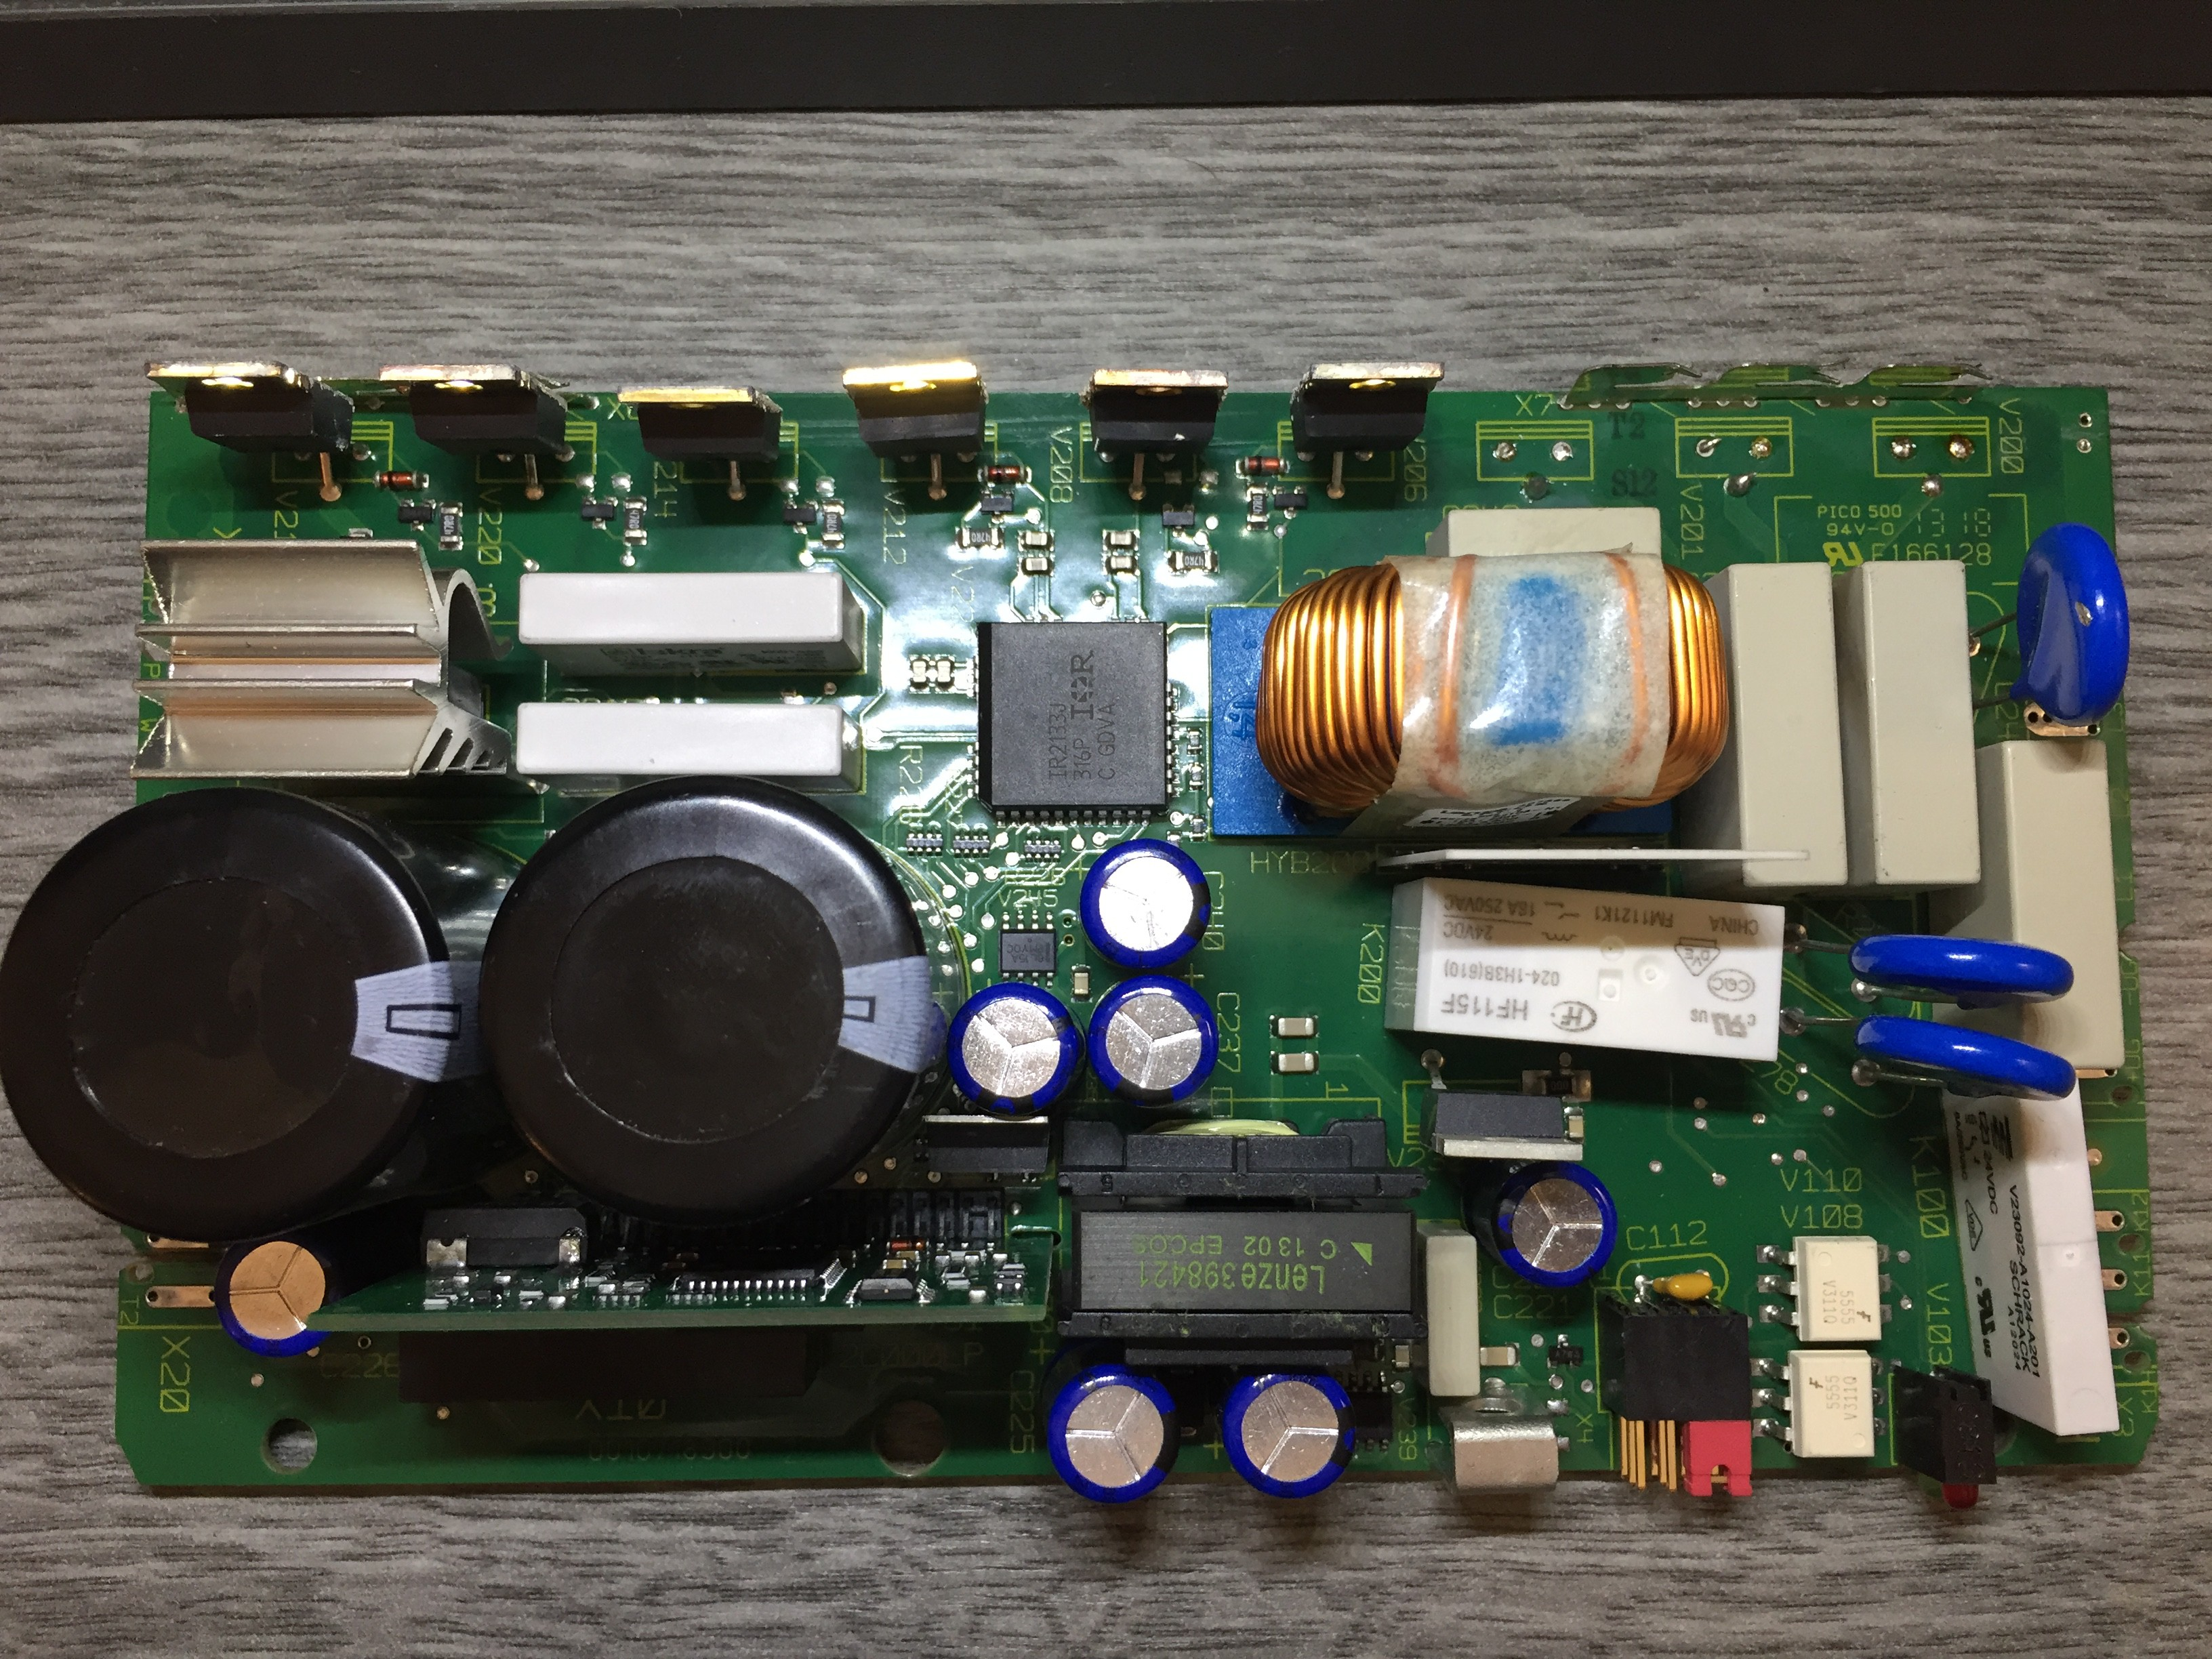 How To Repair Any Vfd Phase Variable Frequency Drive Circuit If You Bend It A Little Bit Can Push The Board Out Metal Heatsink Case